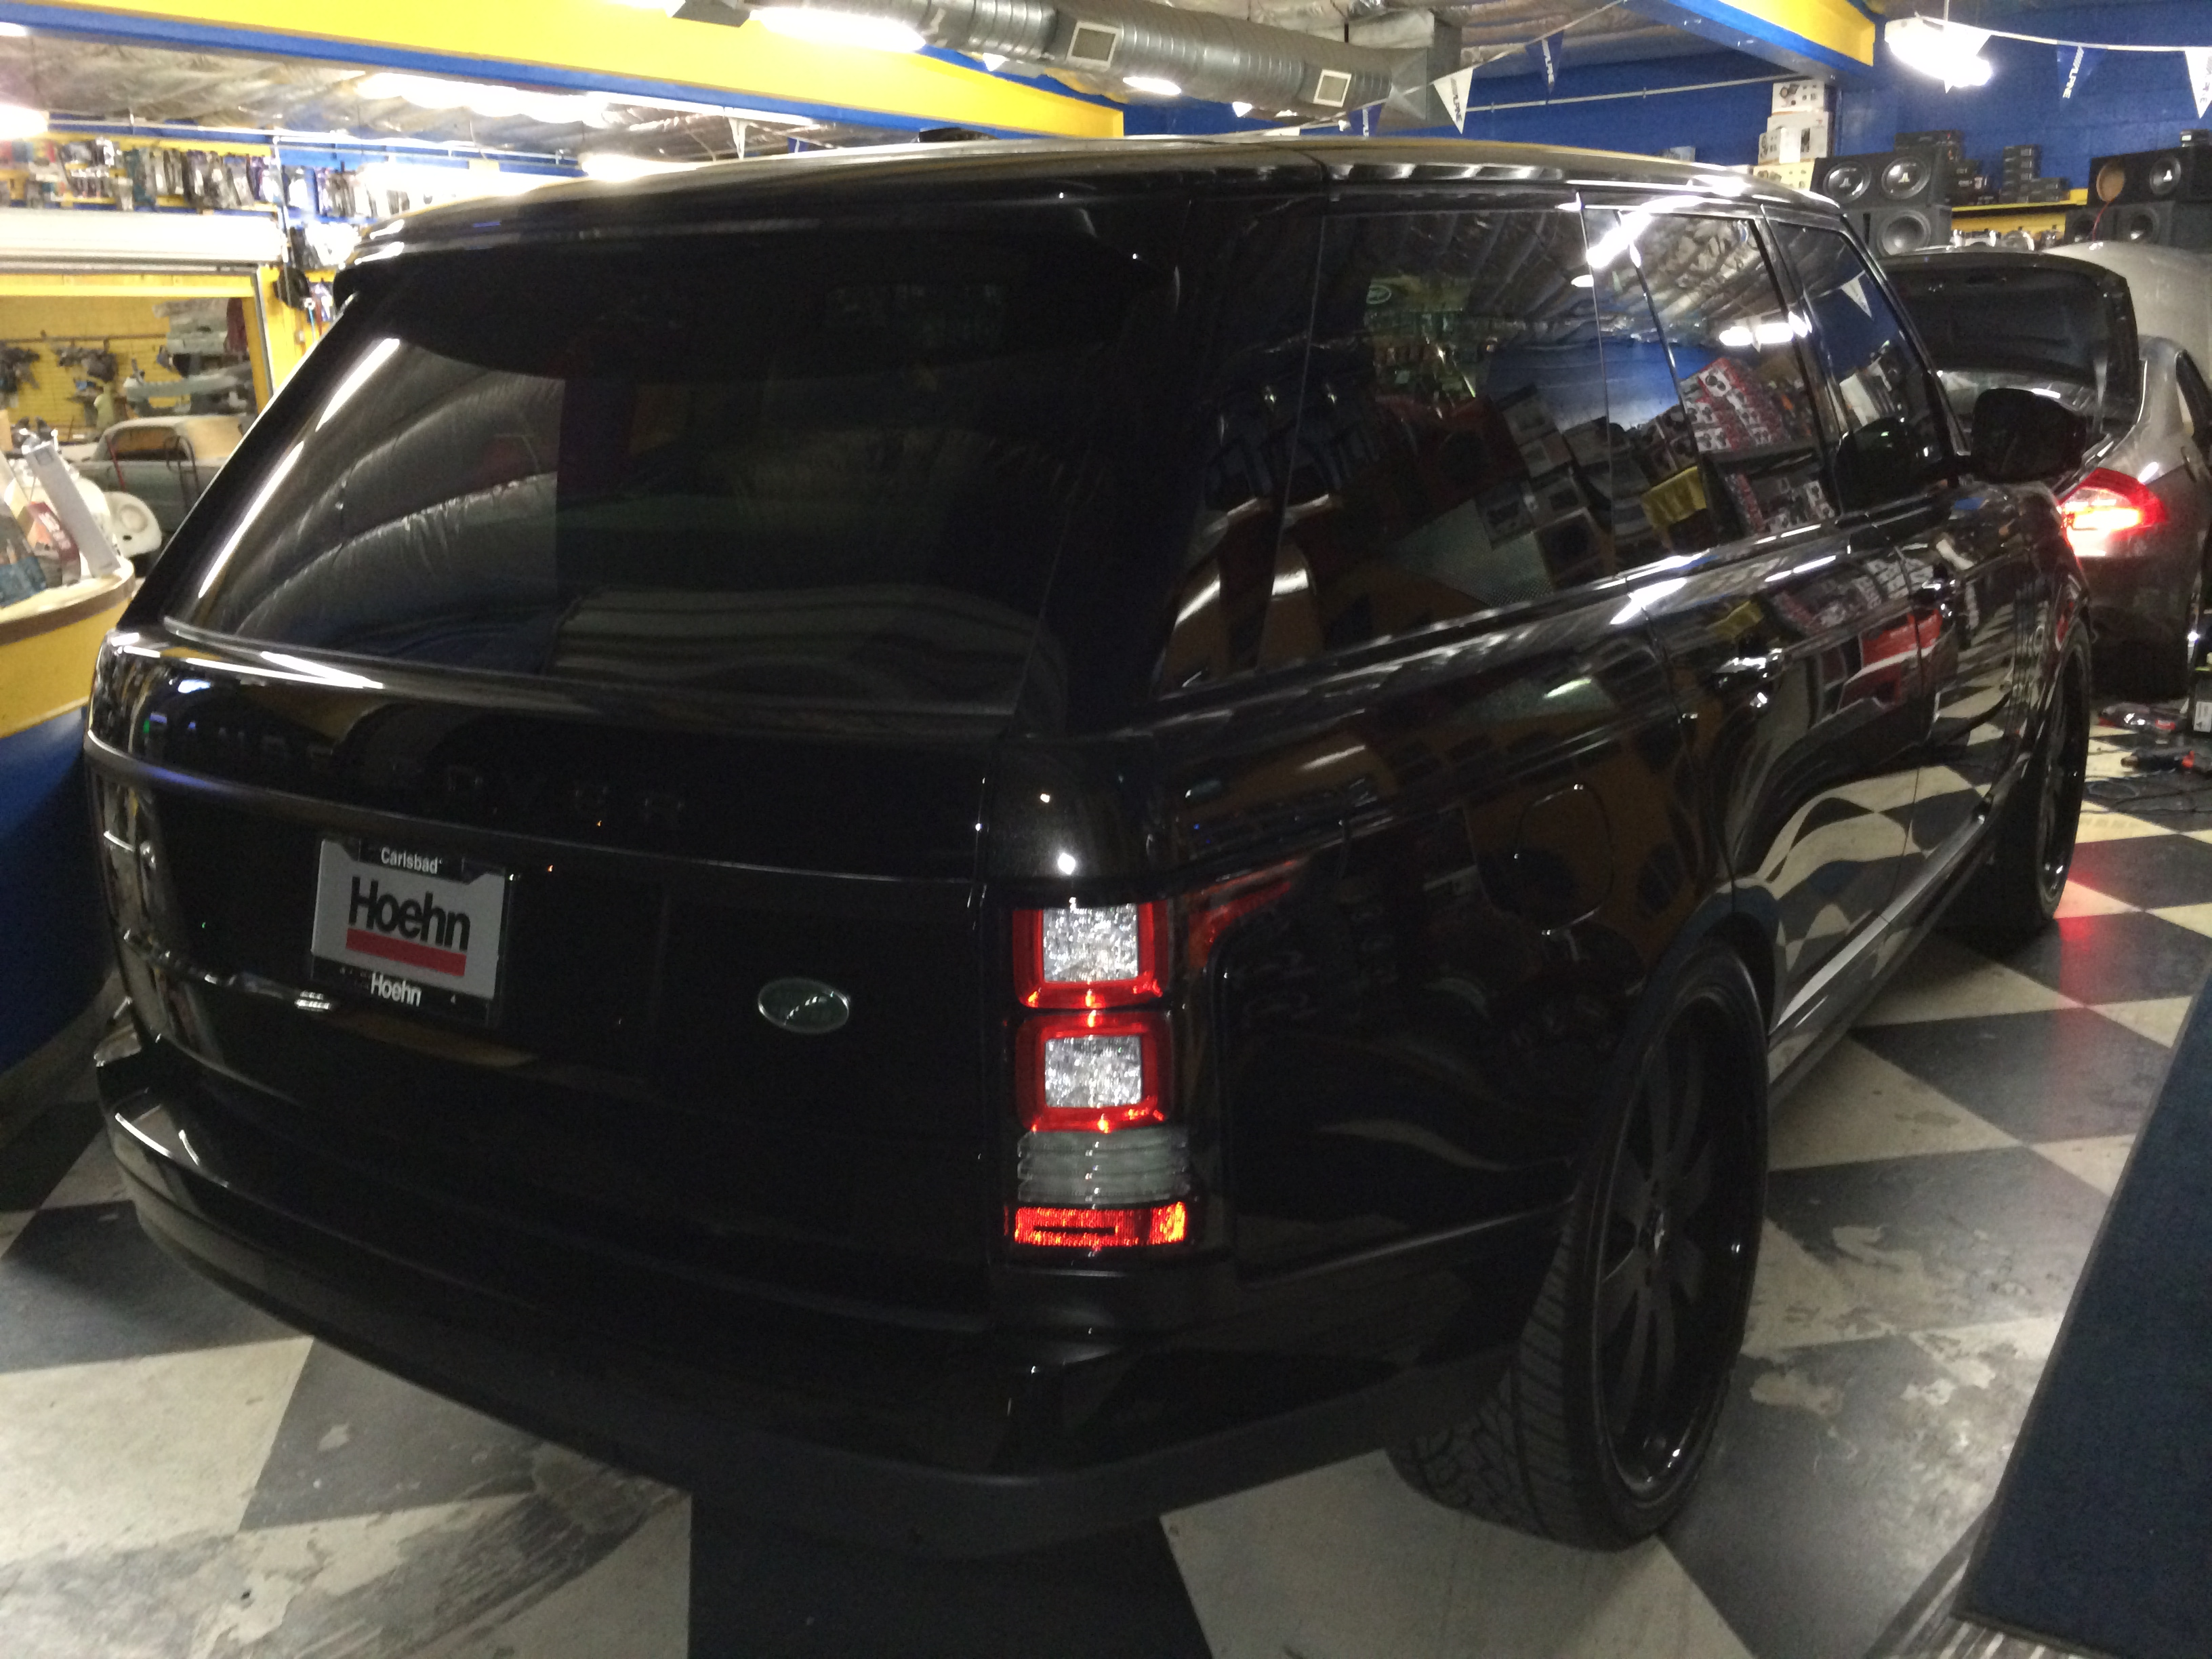 2014 Range Rover Blacked Out